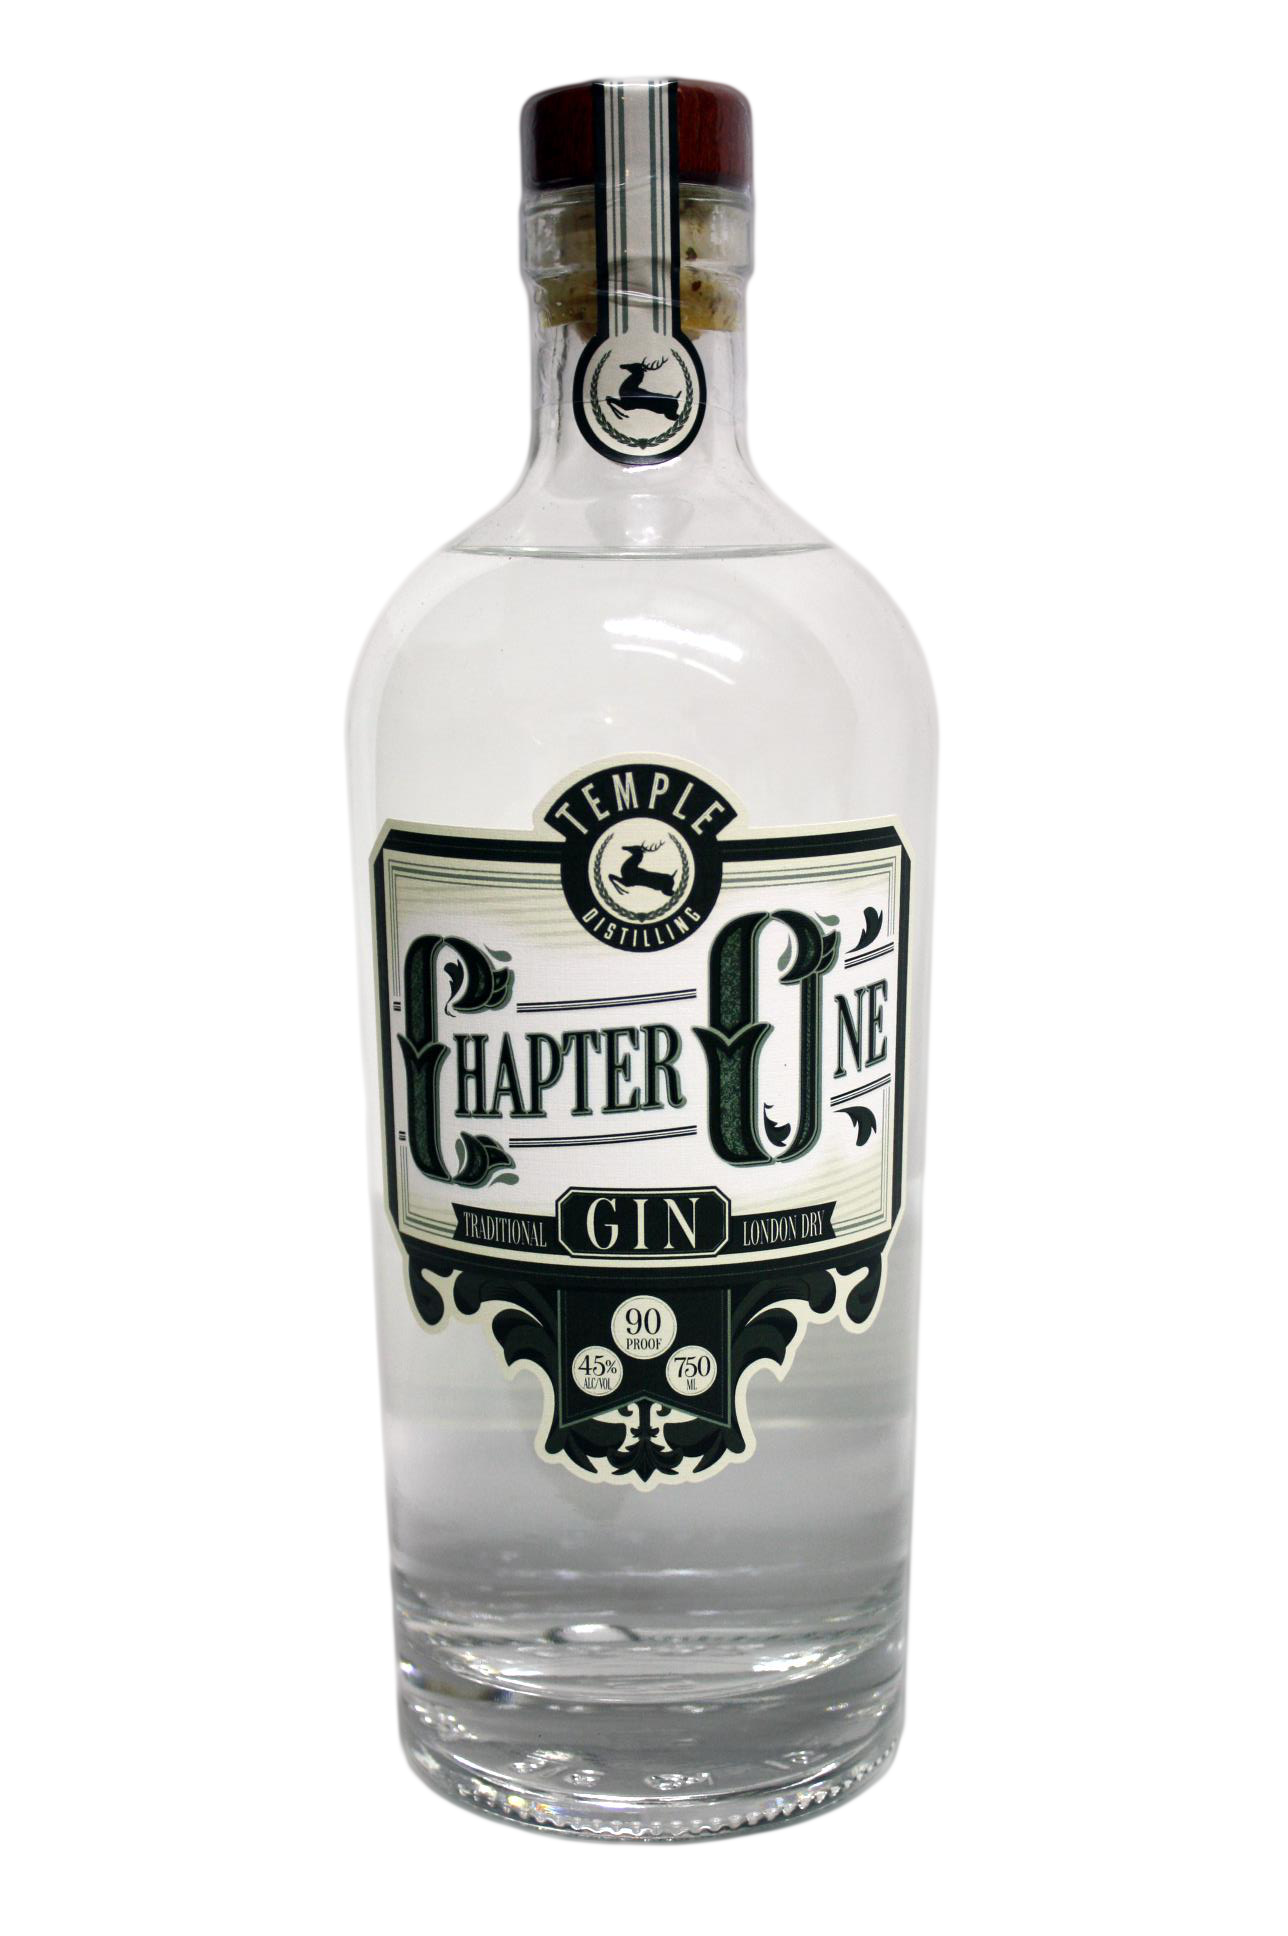 1st Place: Temple Distilling Chapter One. (Image: Sip Northwest)